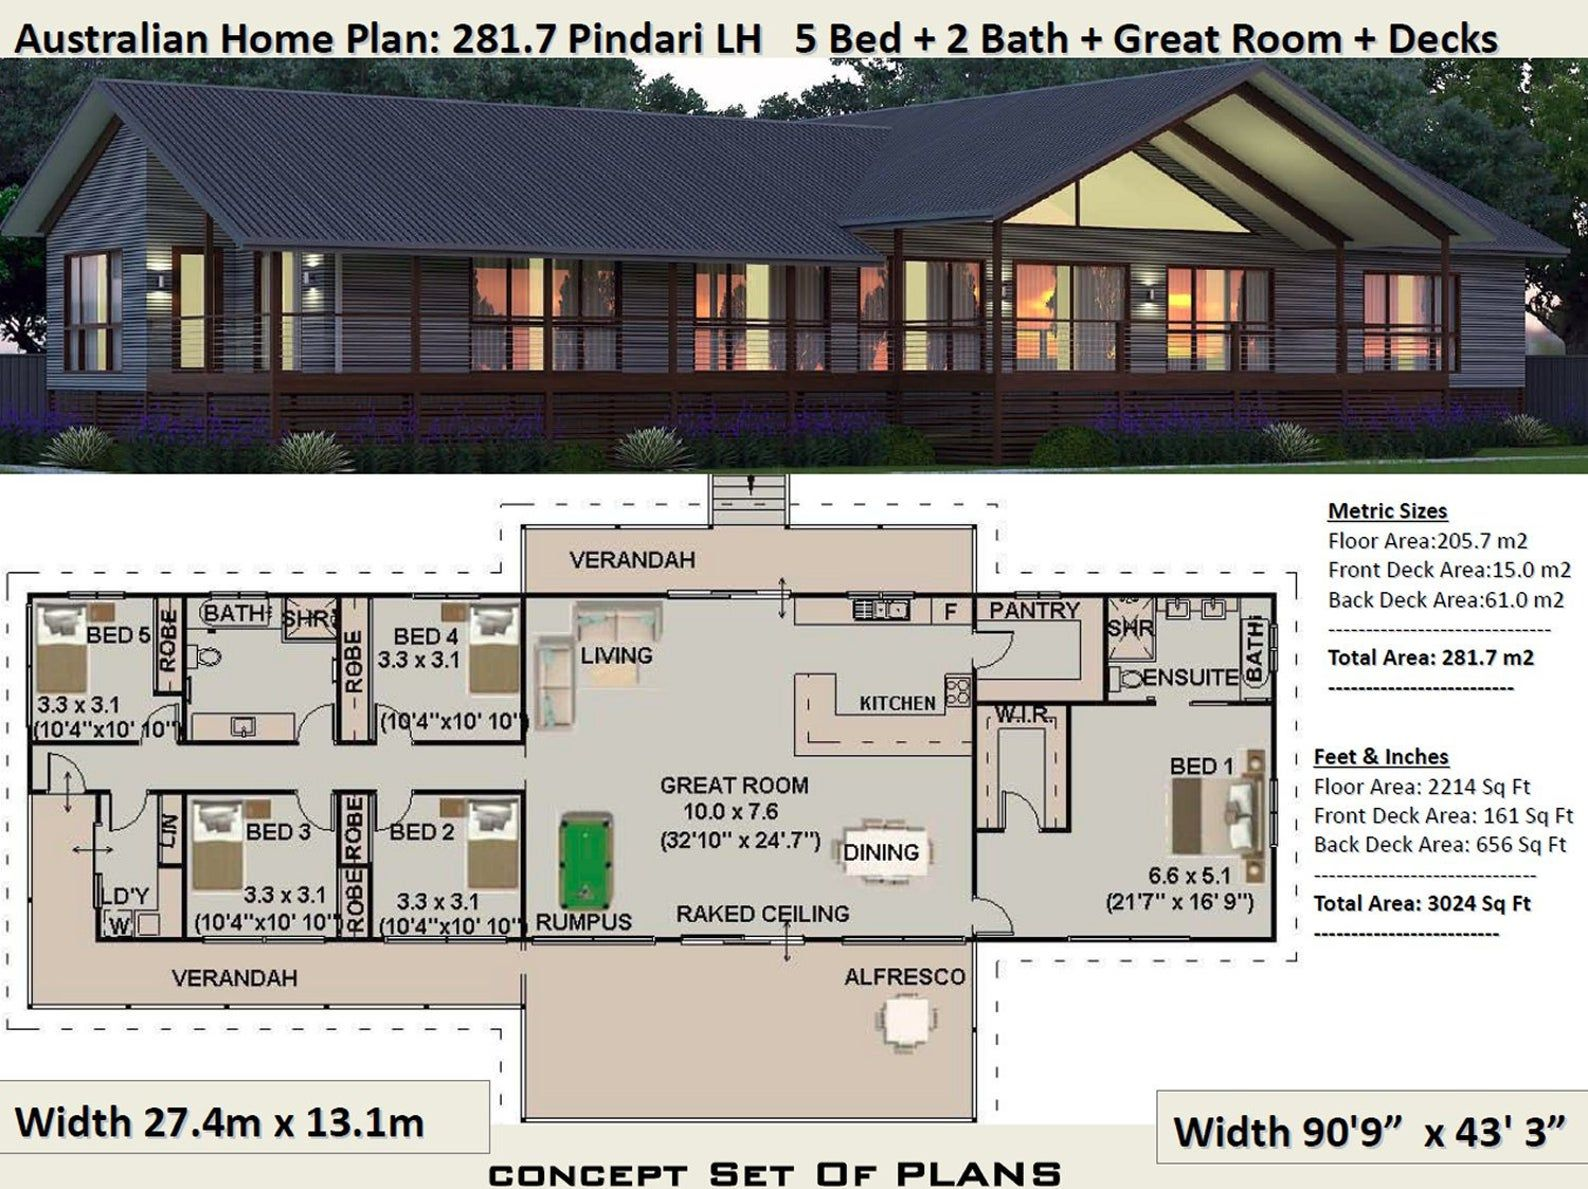 Acreage 5 Bedroom House Plan 281 7 Pindari 281 M2 3024 Sq Foot Country Style House Plans Australia Australian Homestead Designs Country Style House Plans House Plans Australia House Plans For Sale